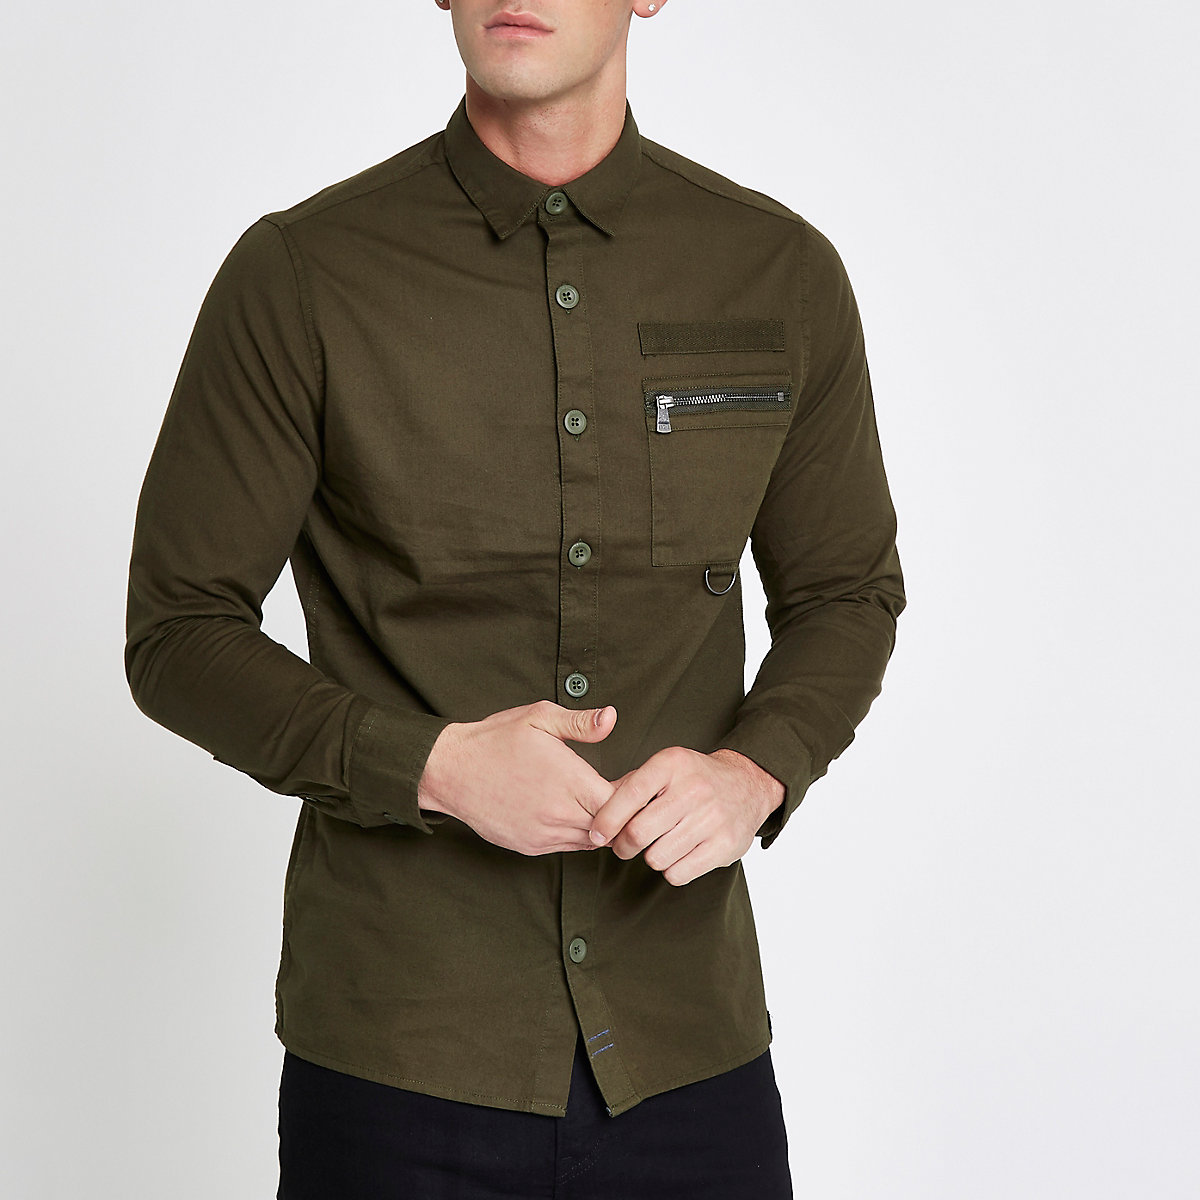 Only & Sons khaki green pocket shirt